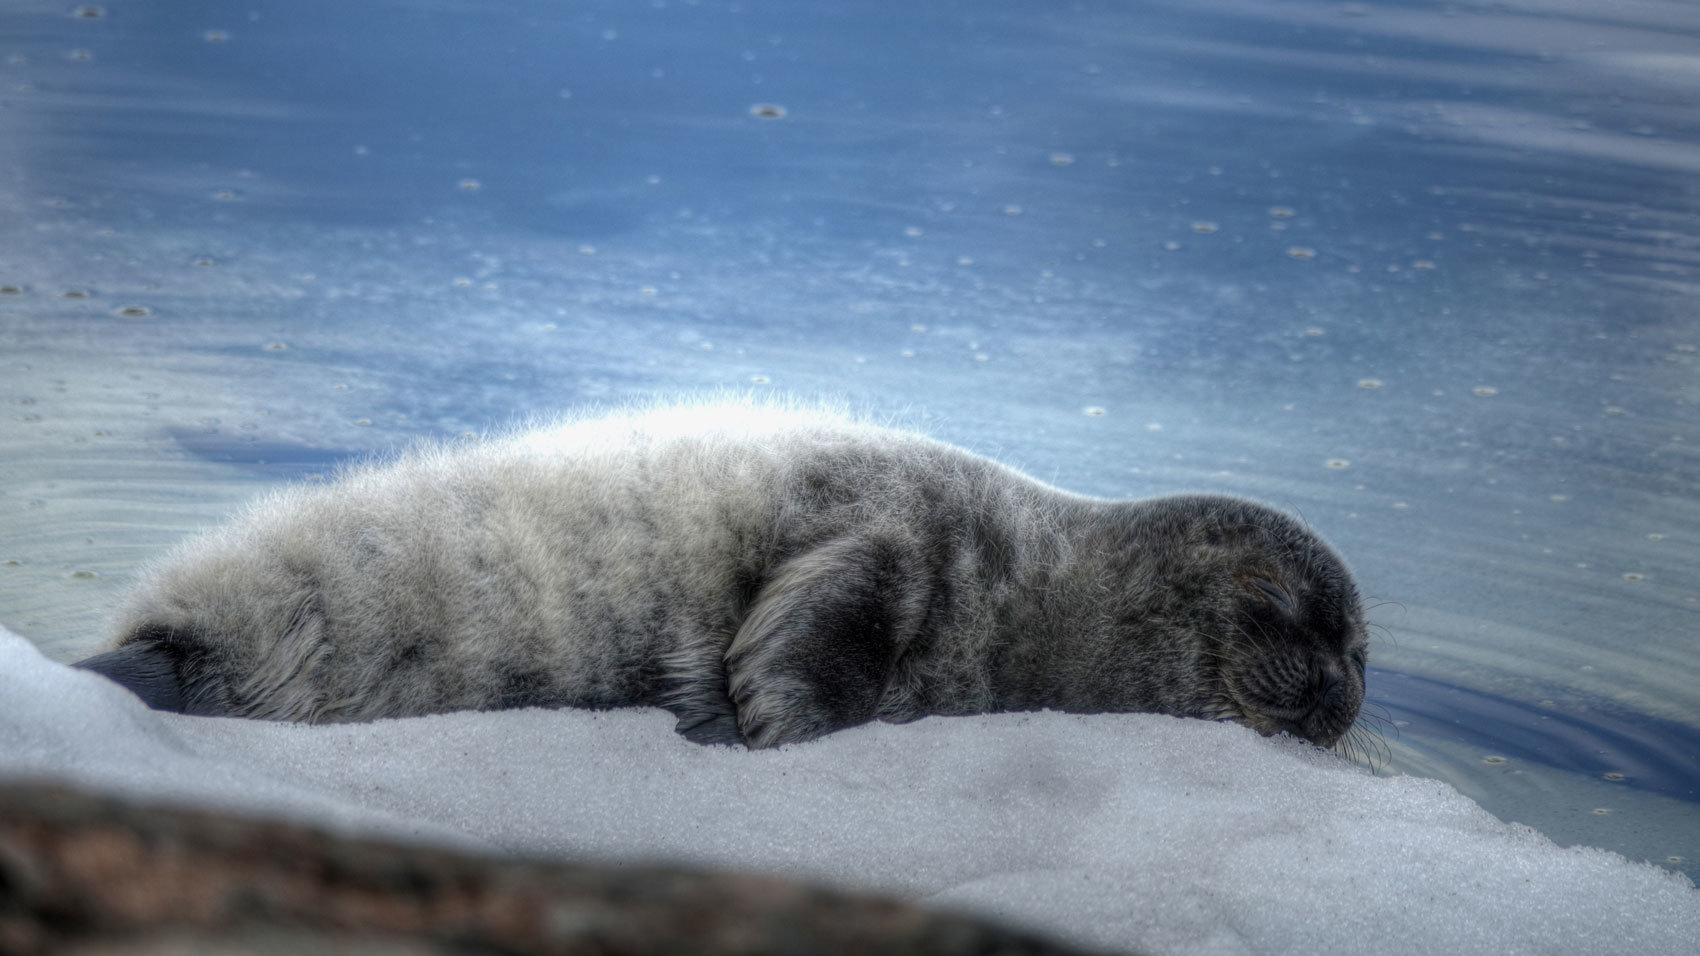 A ringed seal on the snow. Photo: Ismo Marttinen/WWF.